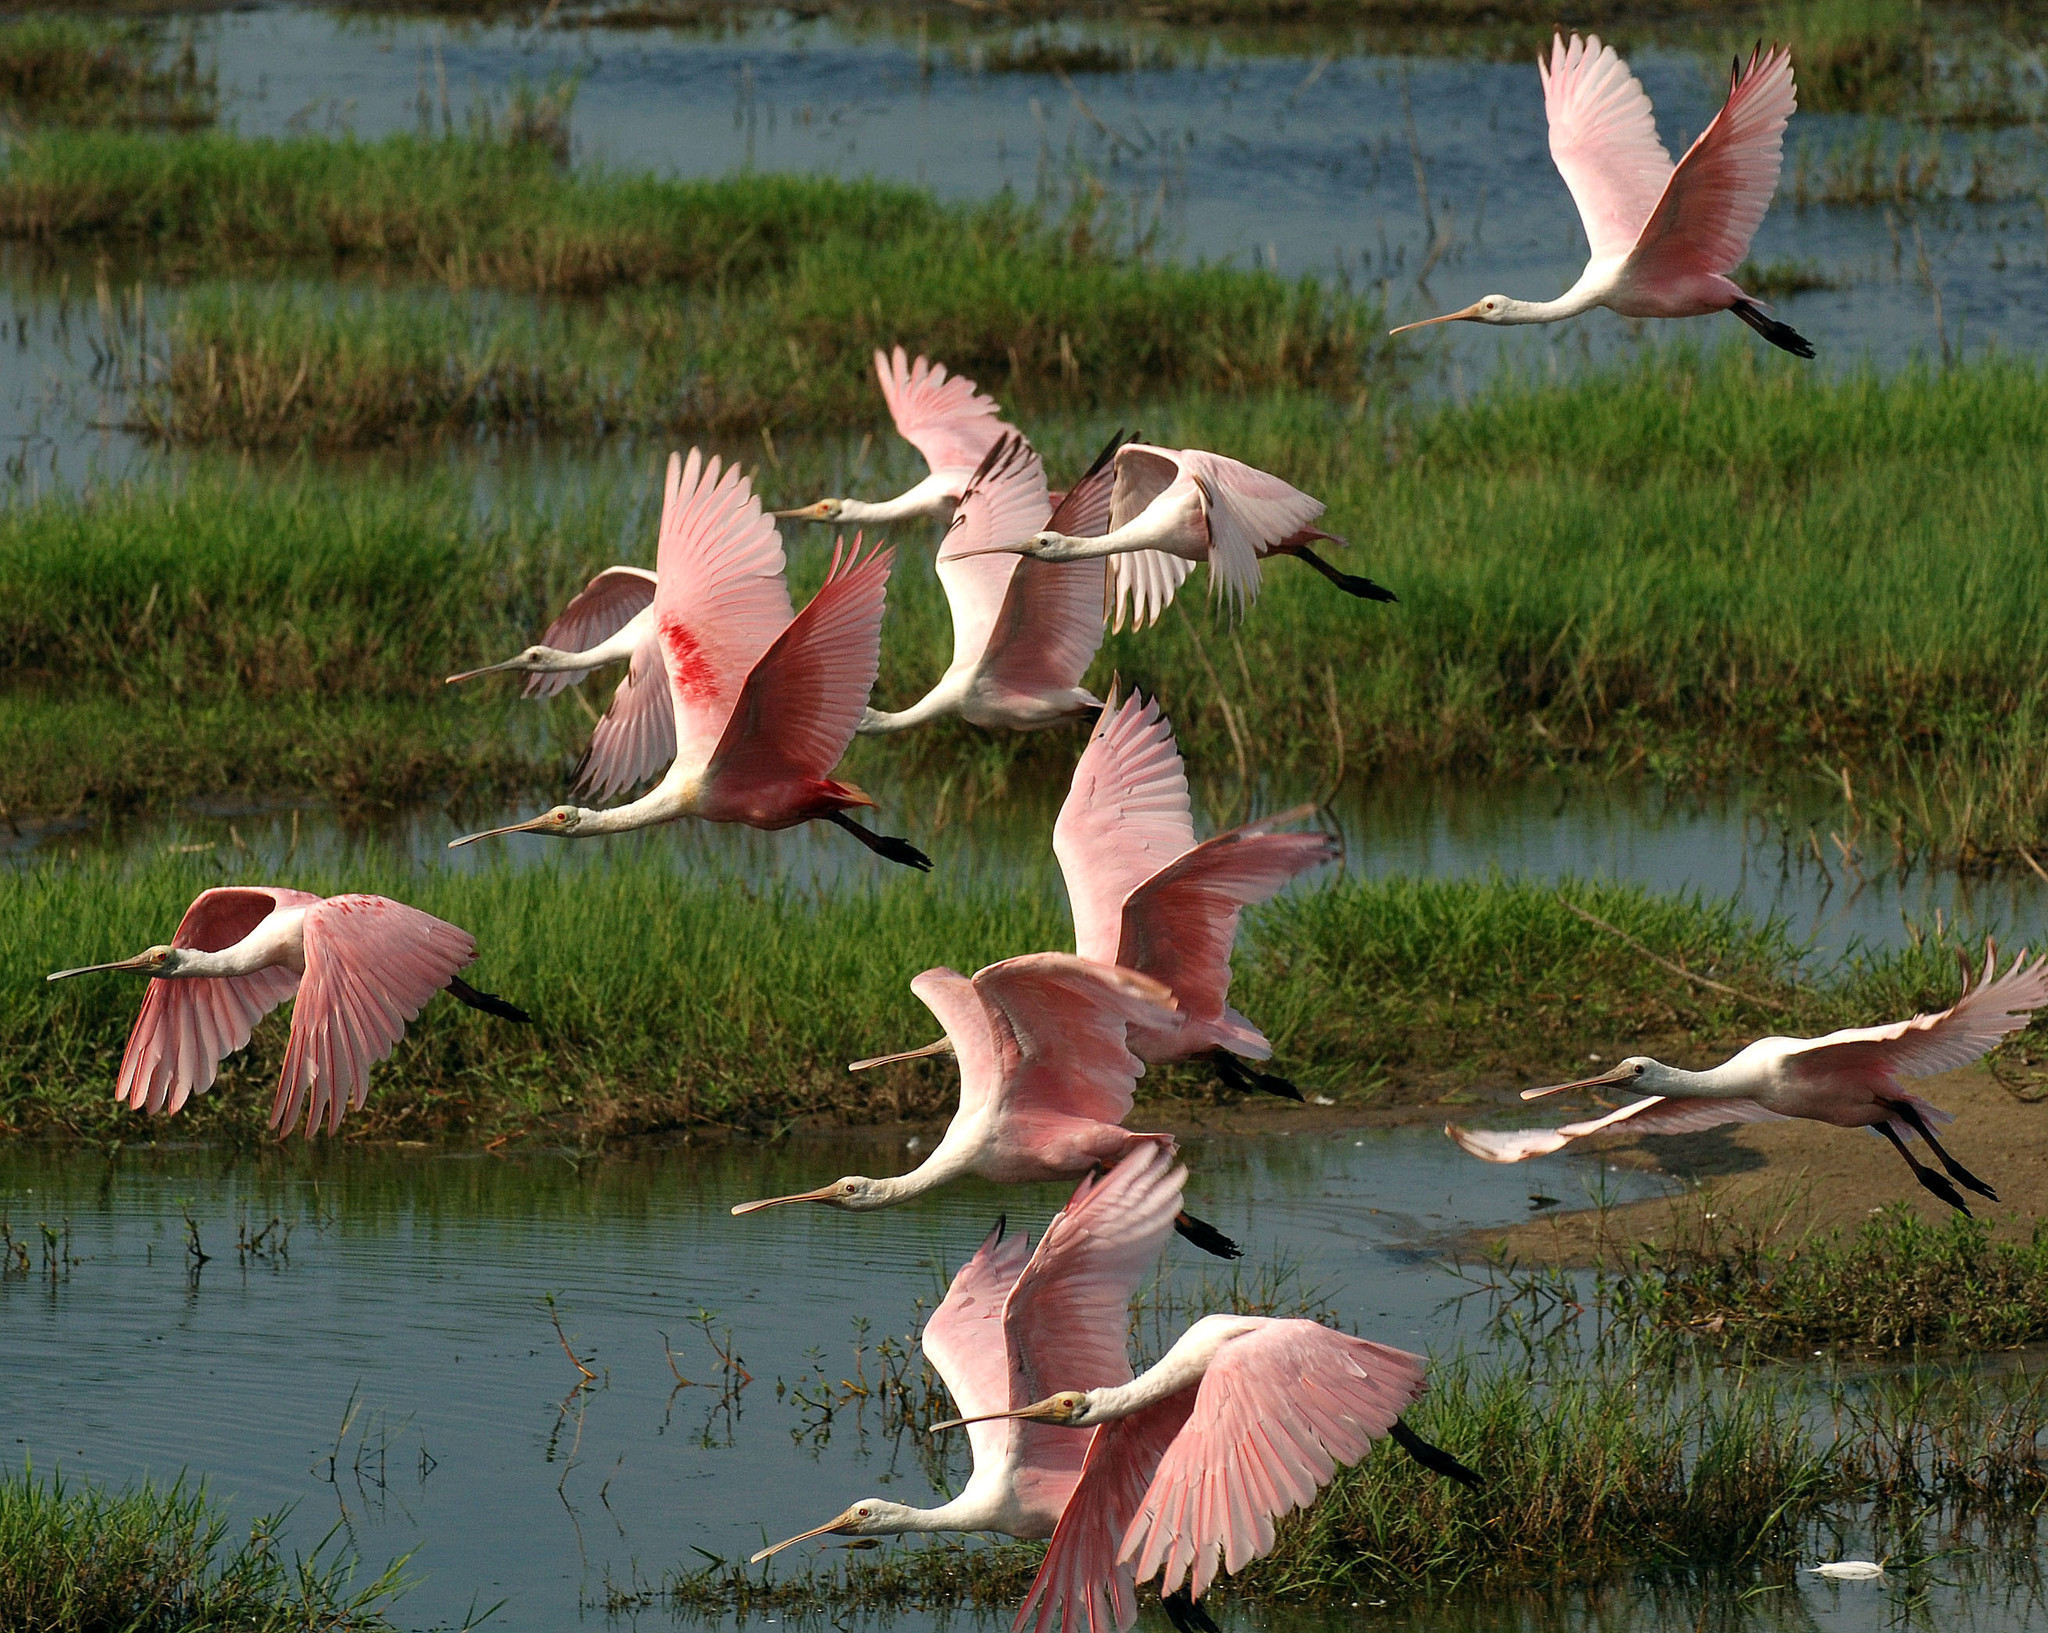 Free entry at Everglades National Park and Shark Valley on Saturday